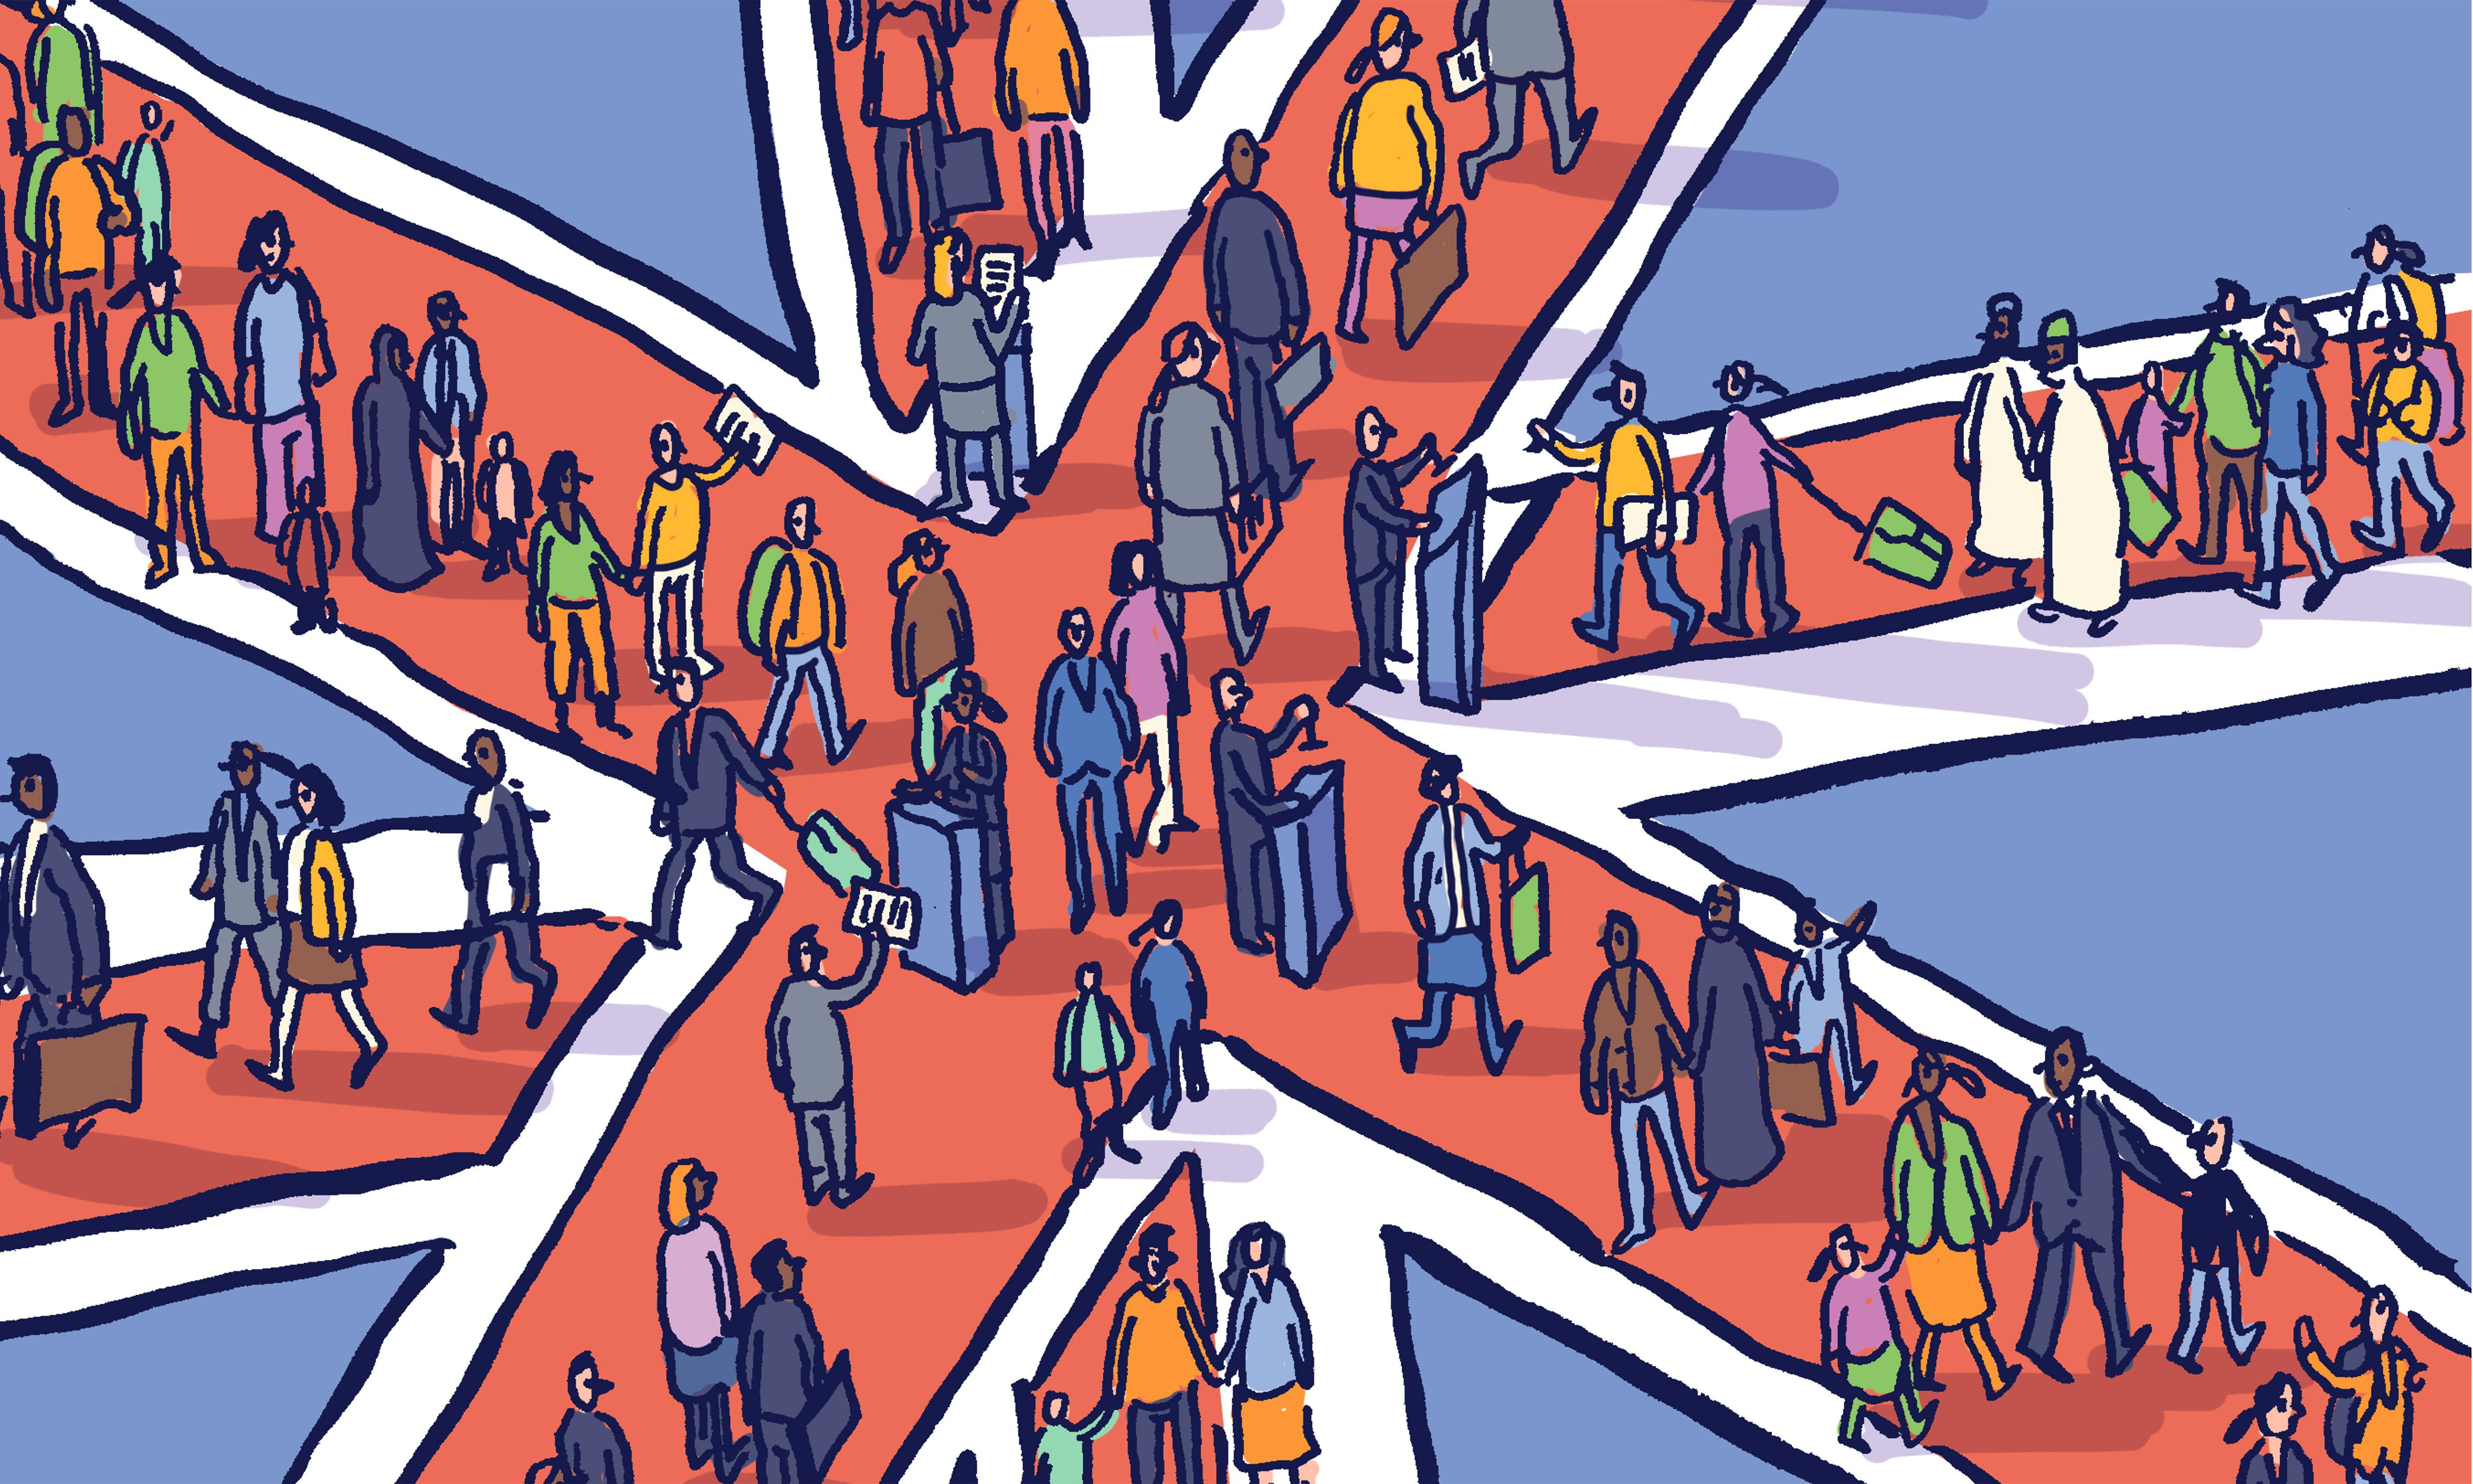 Can a nation be both open and in control? The UK is about to find out